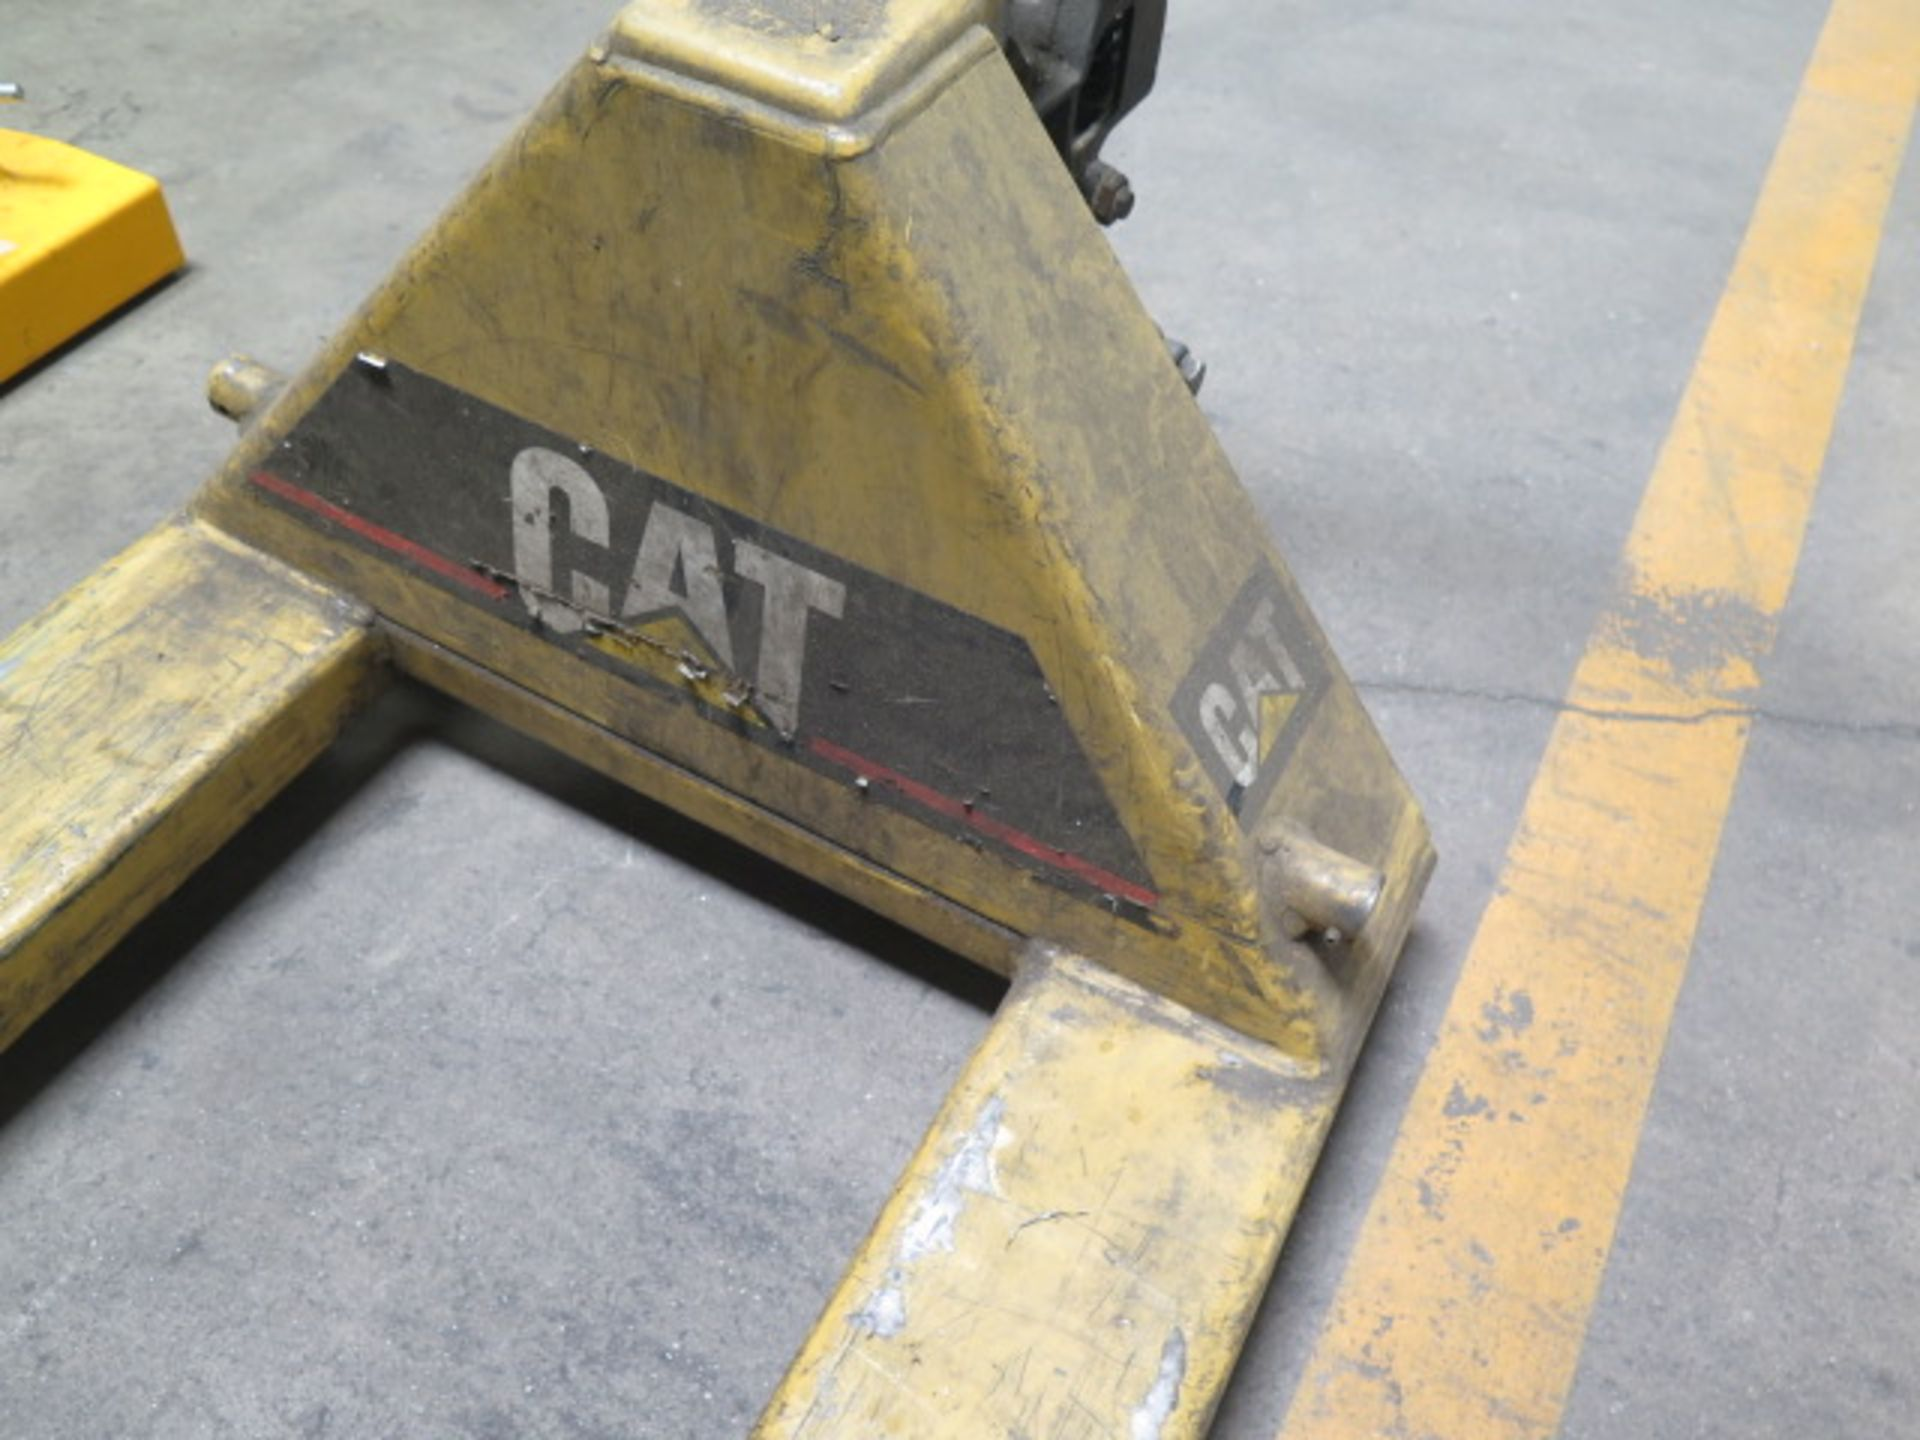 Caterpillar Pallet Jack (SOLD AS-IS - NO WARRANTY) - Image 3 of 3